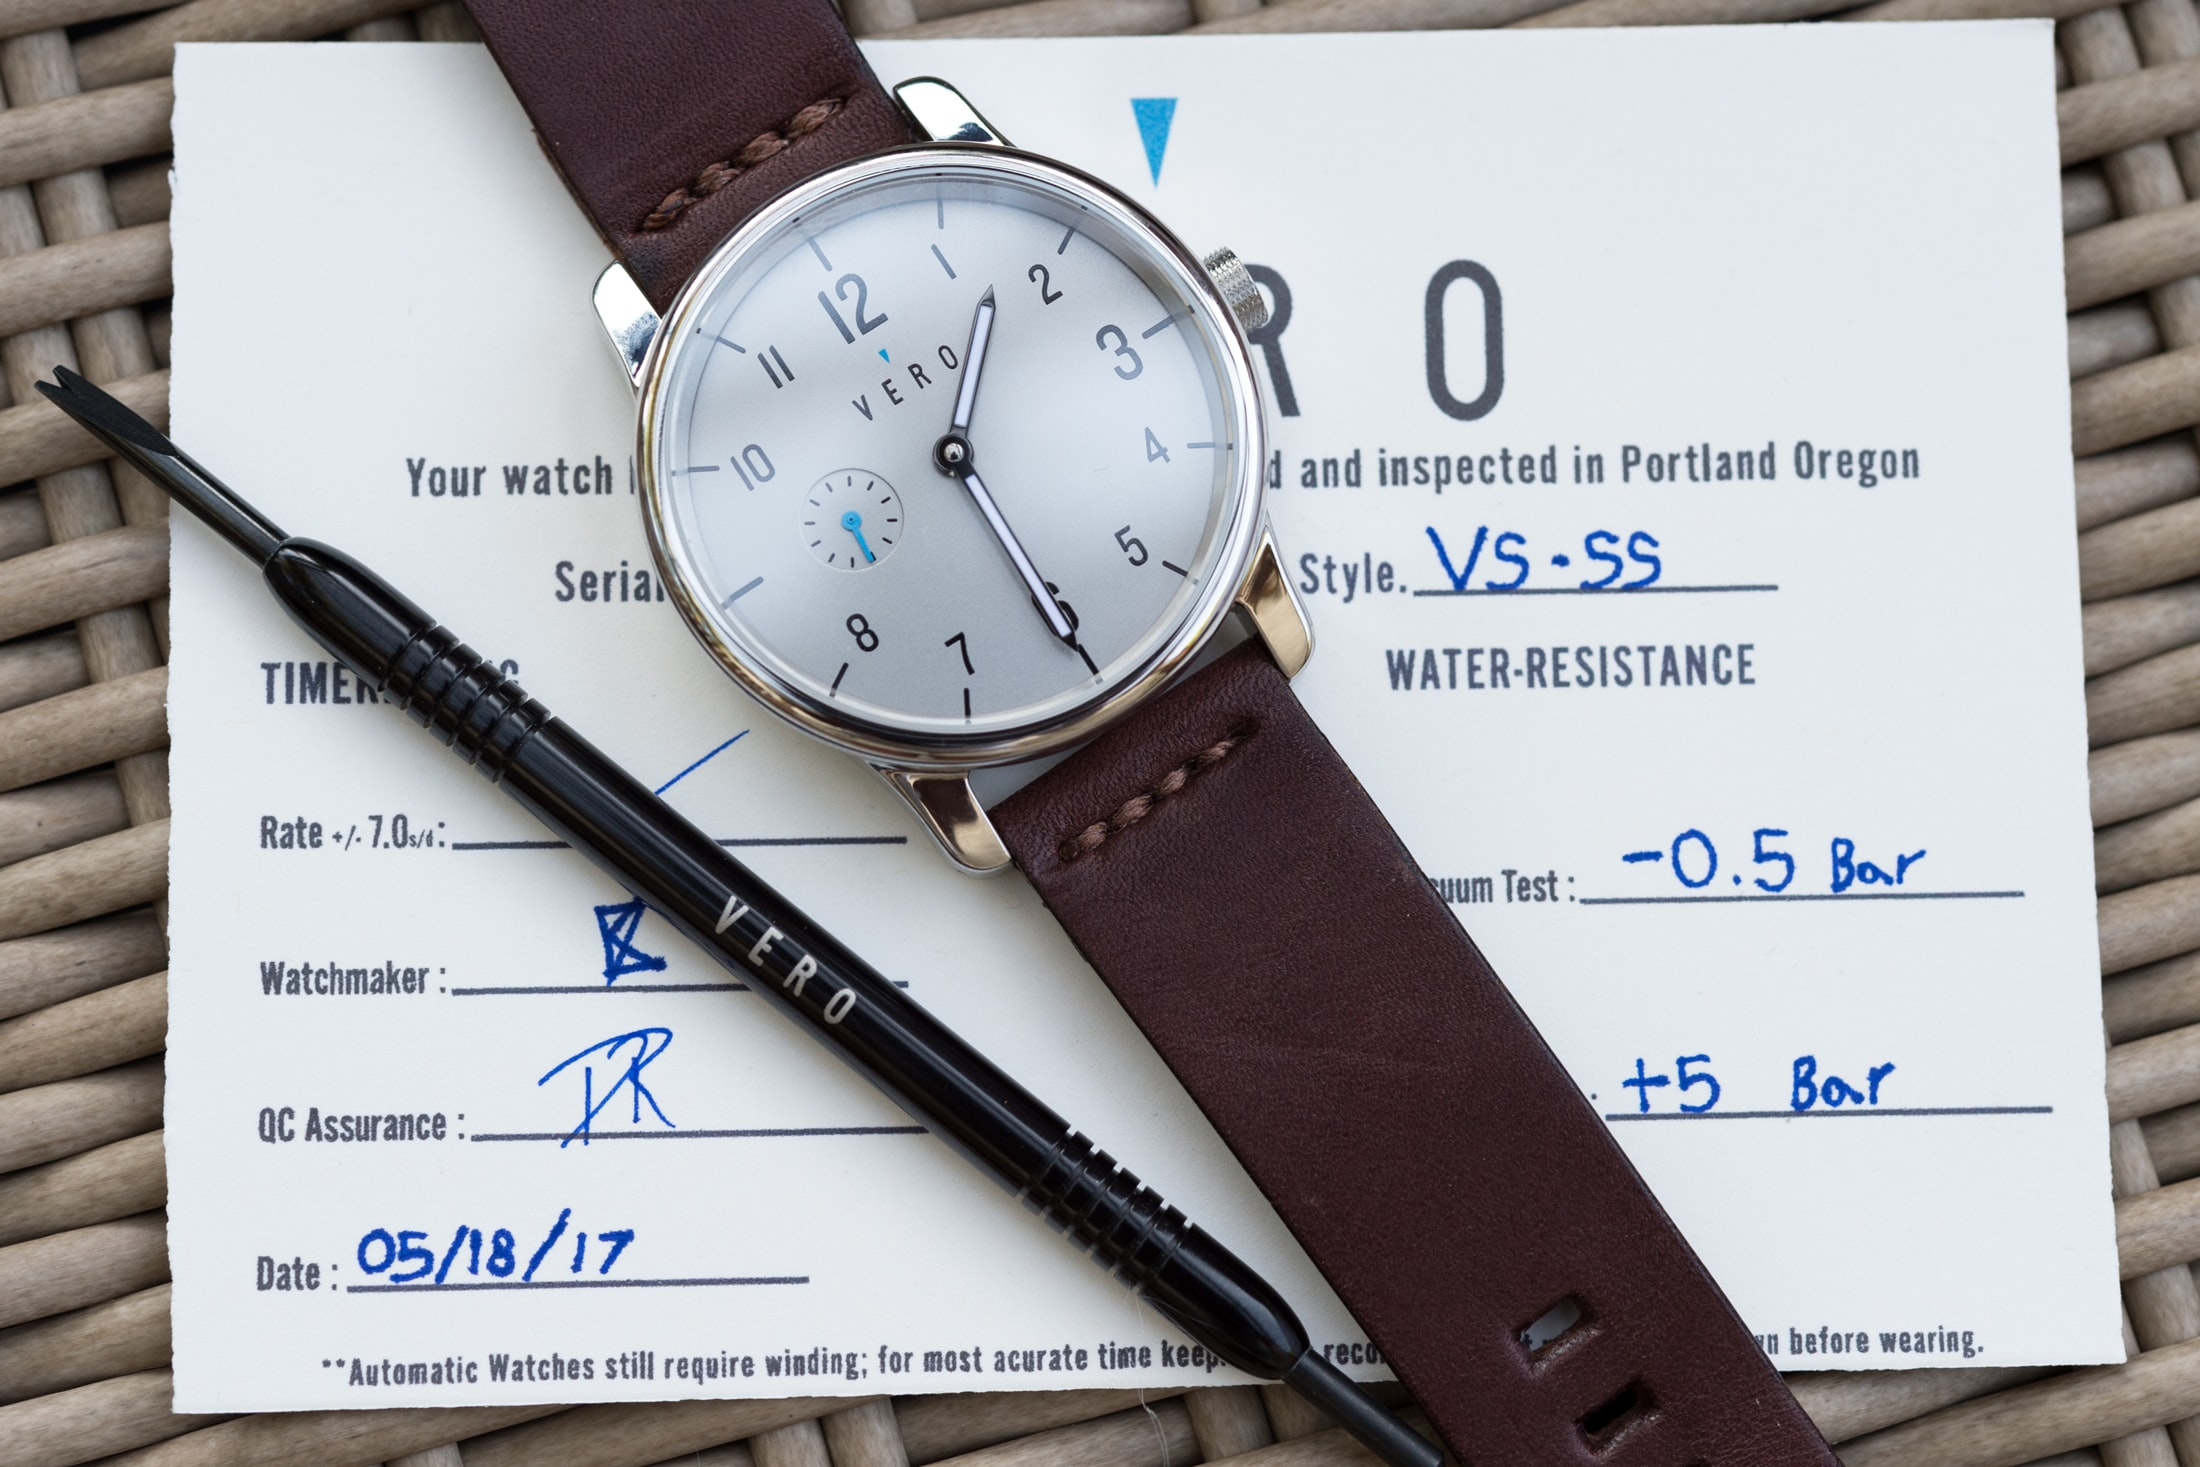 Vero VS-SS timing certificate hands-on: the vero vs-ss and the american-made question Hands-On: The Vero VS-SS And The American-Made Question vero 03